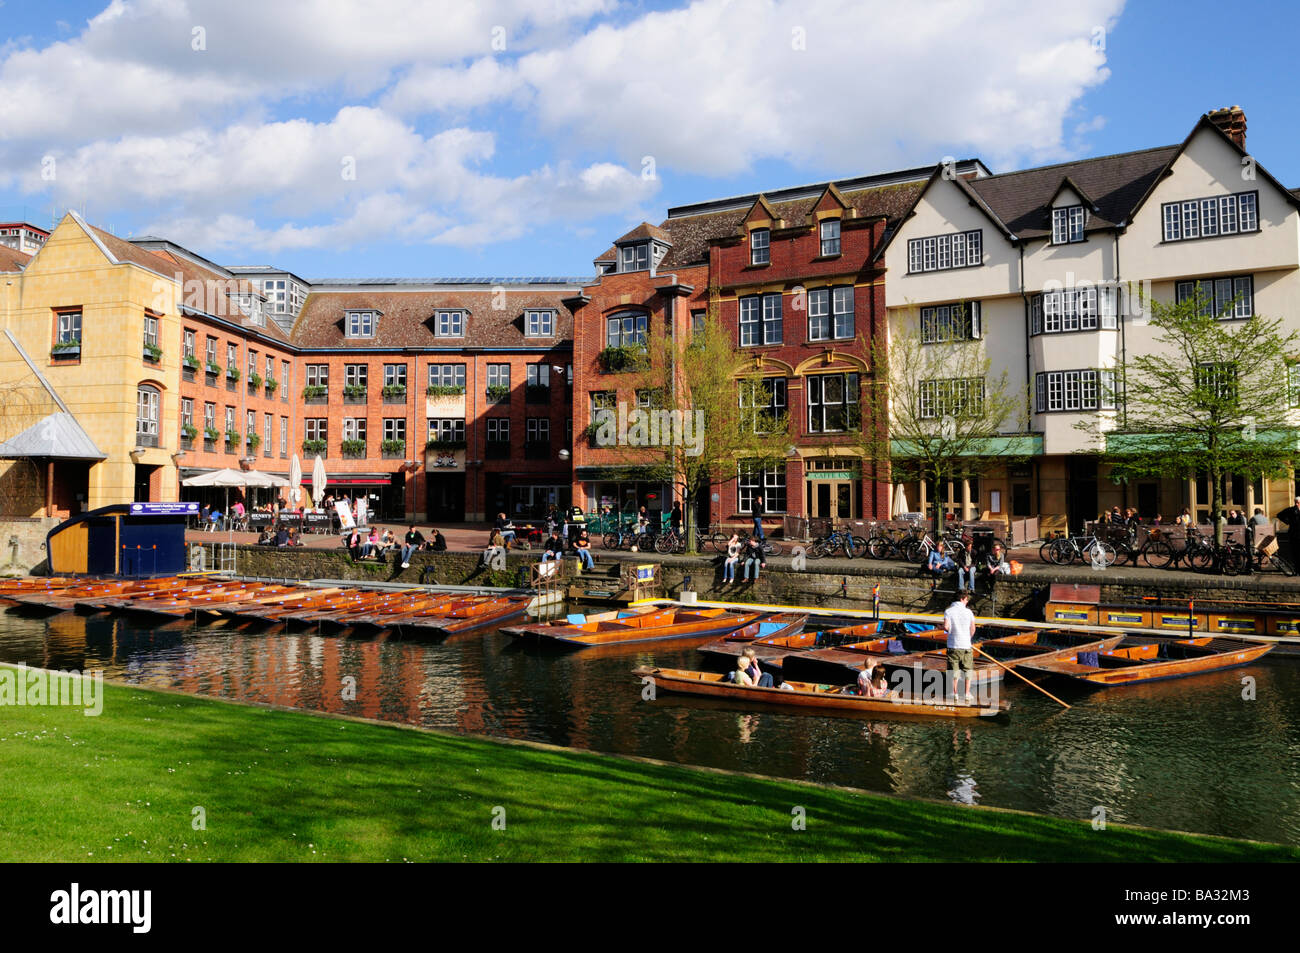 Punting at the Quayside area of Cambridge England UK - Stock Image